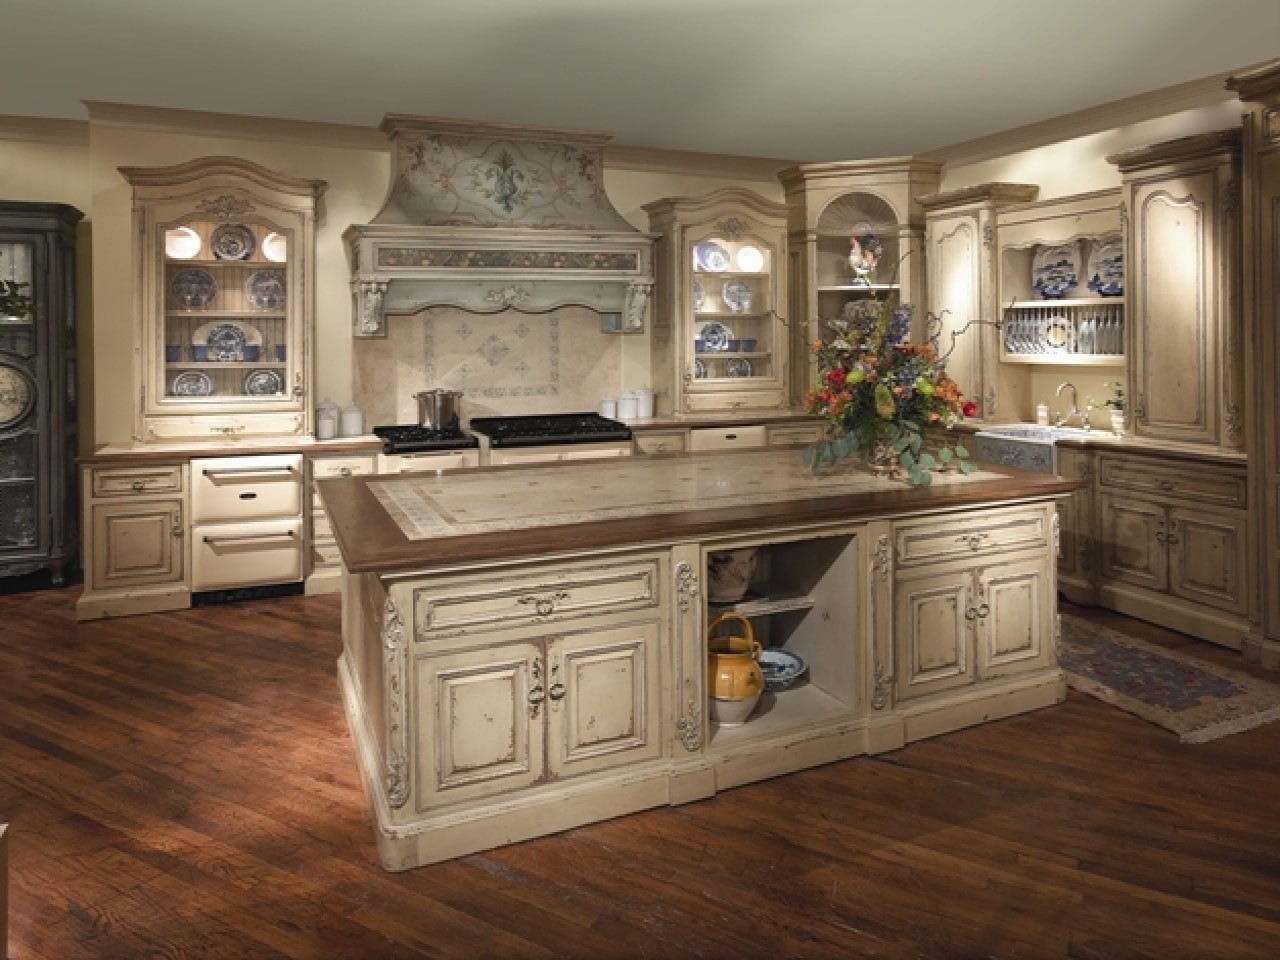 Beau French Country Cabinets 1